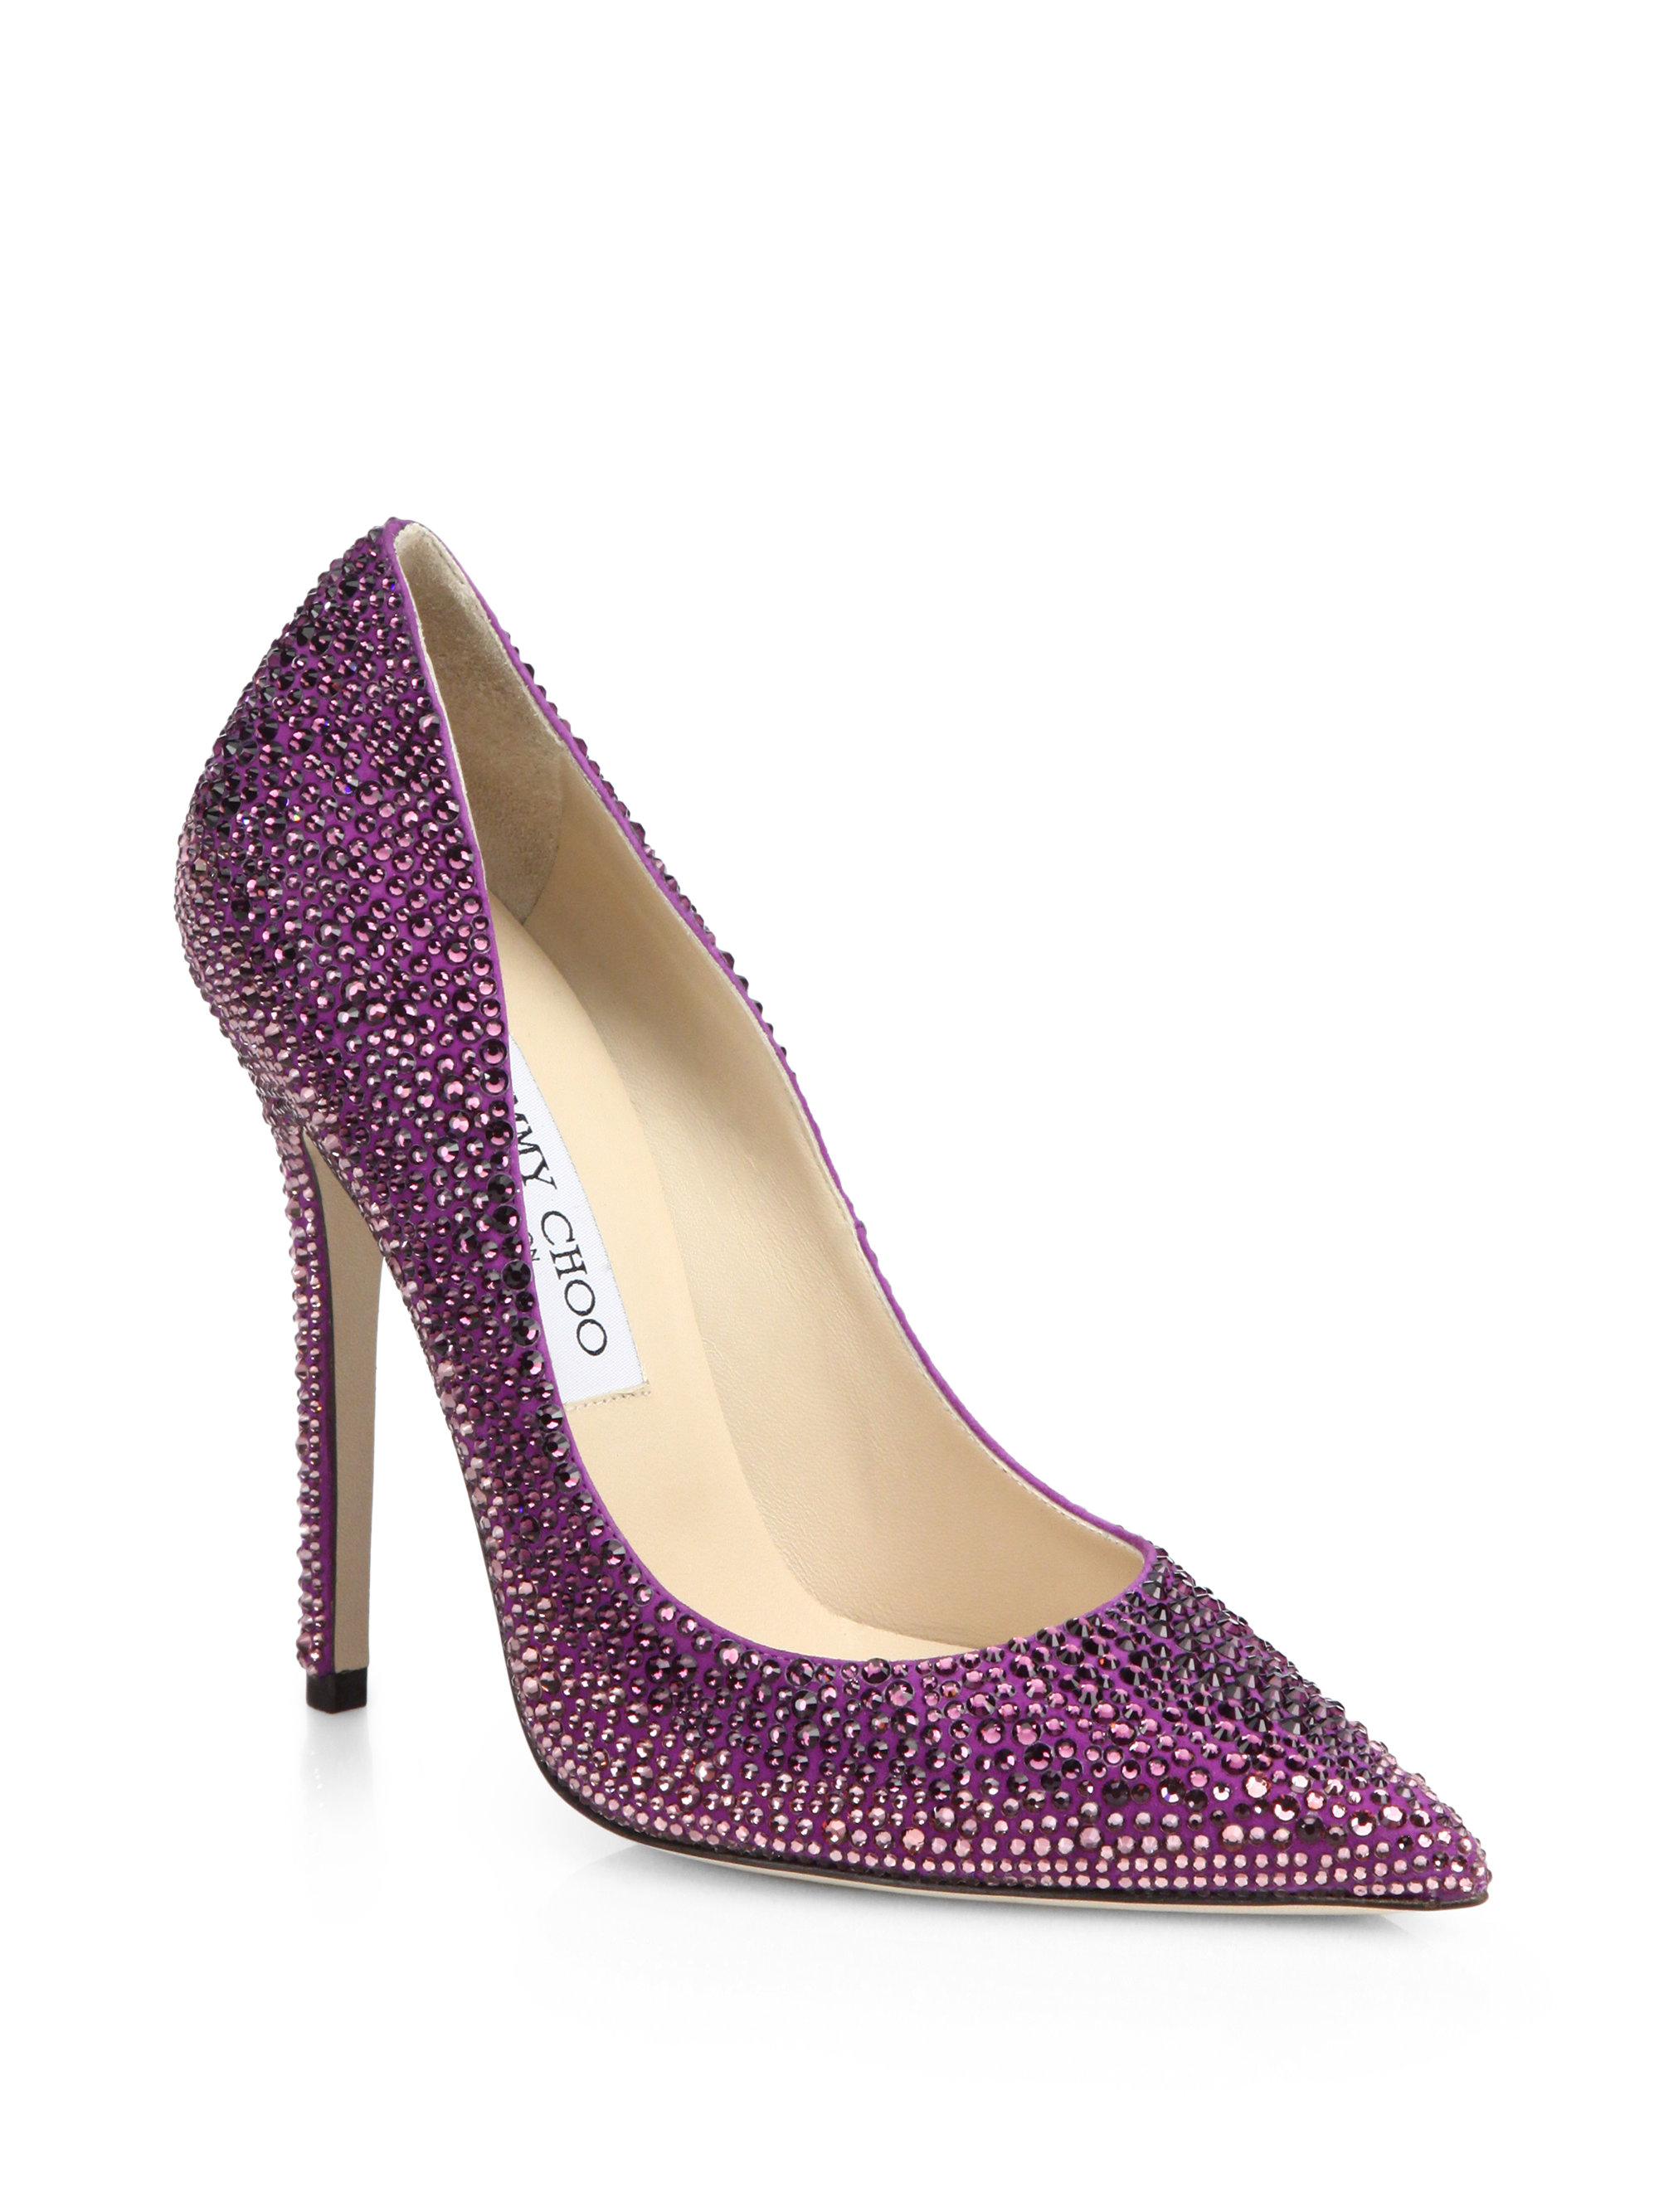 55e40ca0e370 ... release date lyst jimmy choo tartini degradé swarovski crystal covered  pumps in 6fa06 d9e4f